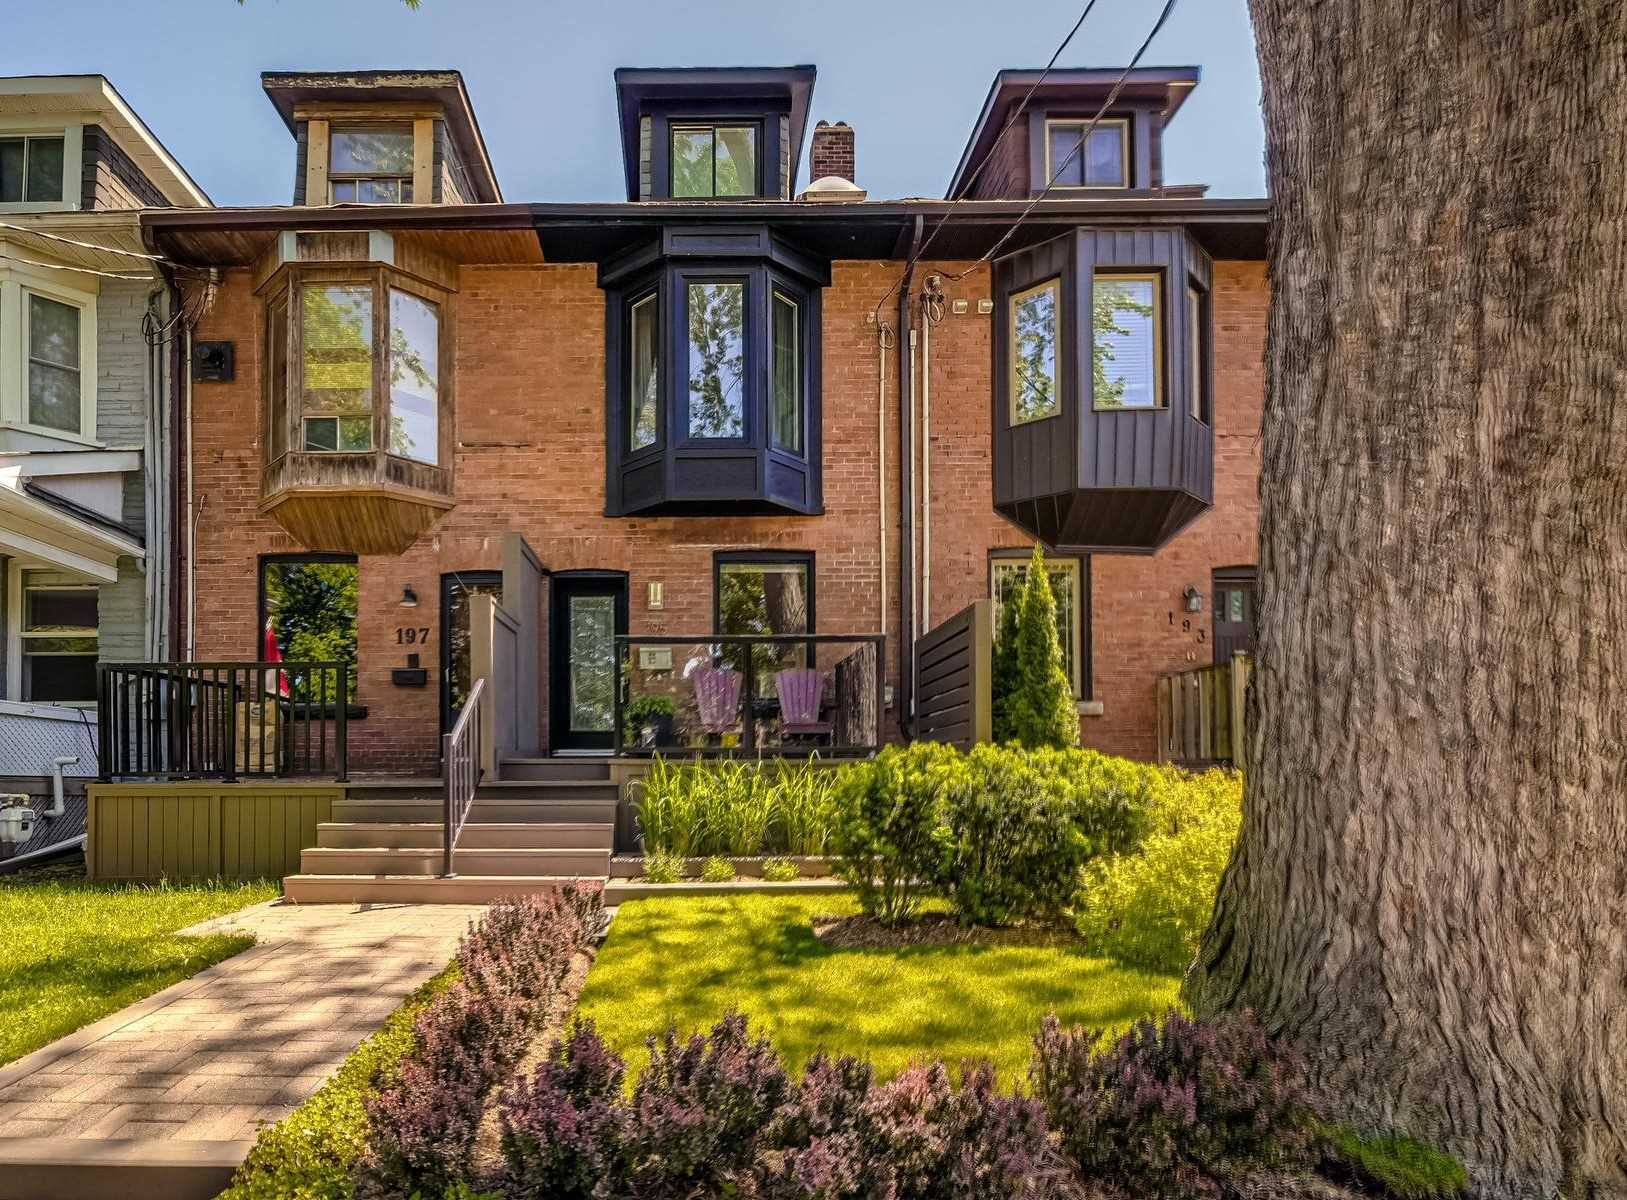 Main Photo: 195 Booth Avenue in Toronto: South Riverdale House (2 1/2 Storey) for sale (Toronto E01)  : MLS®# E4795618